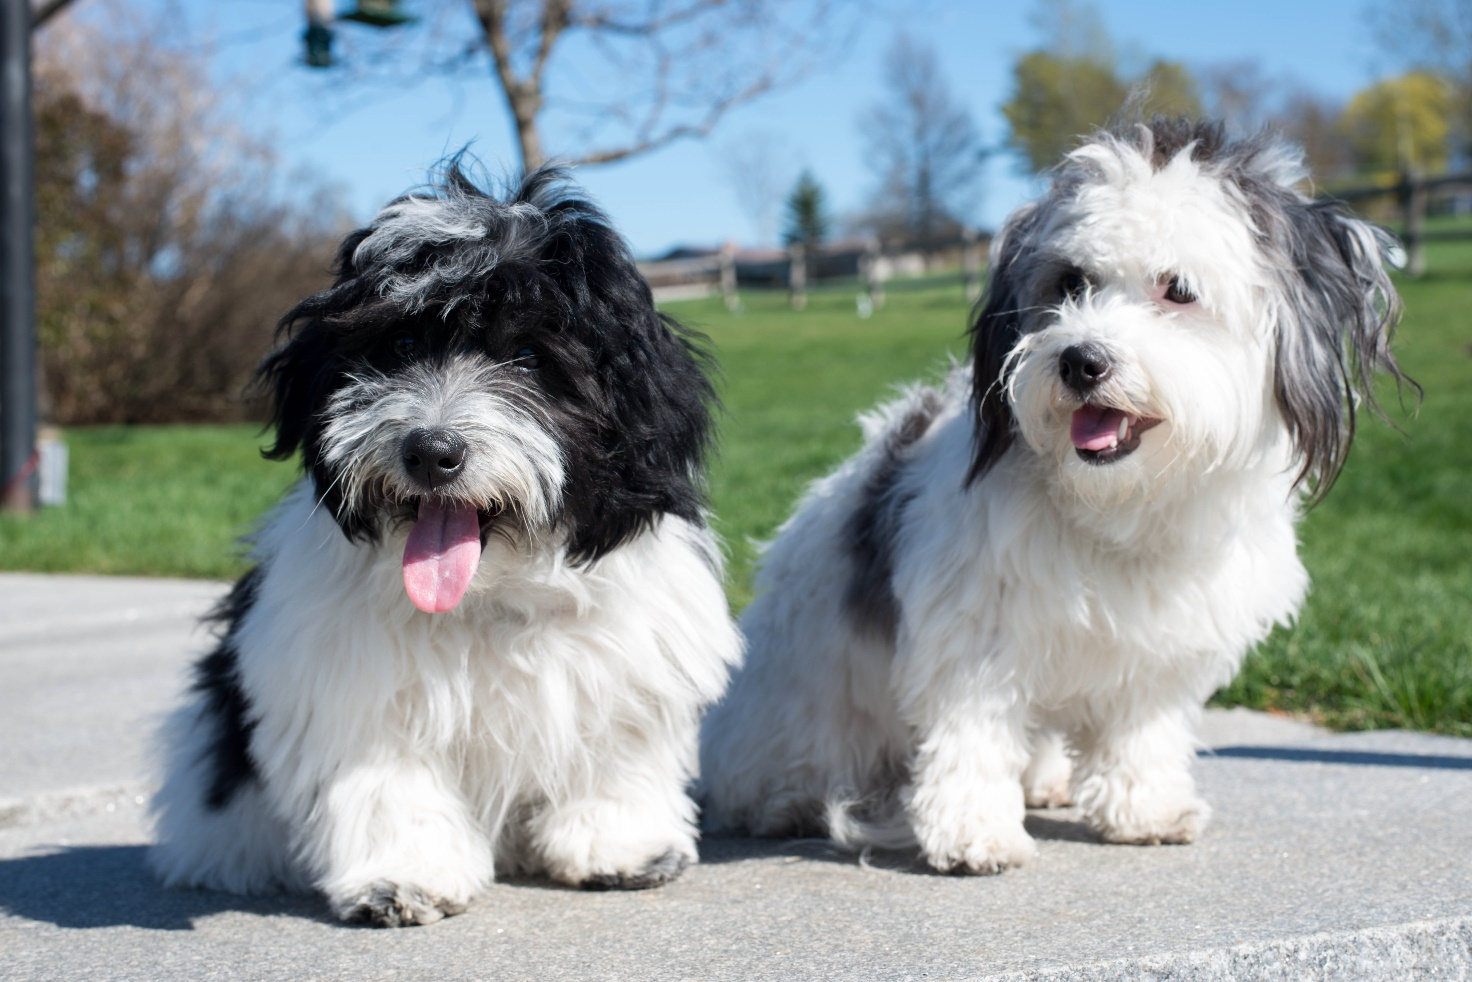 Coton de Tulear white with black markings